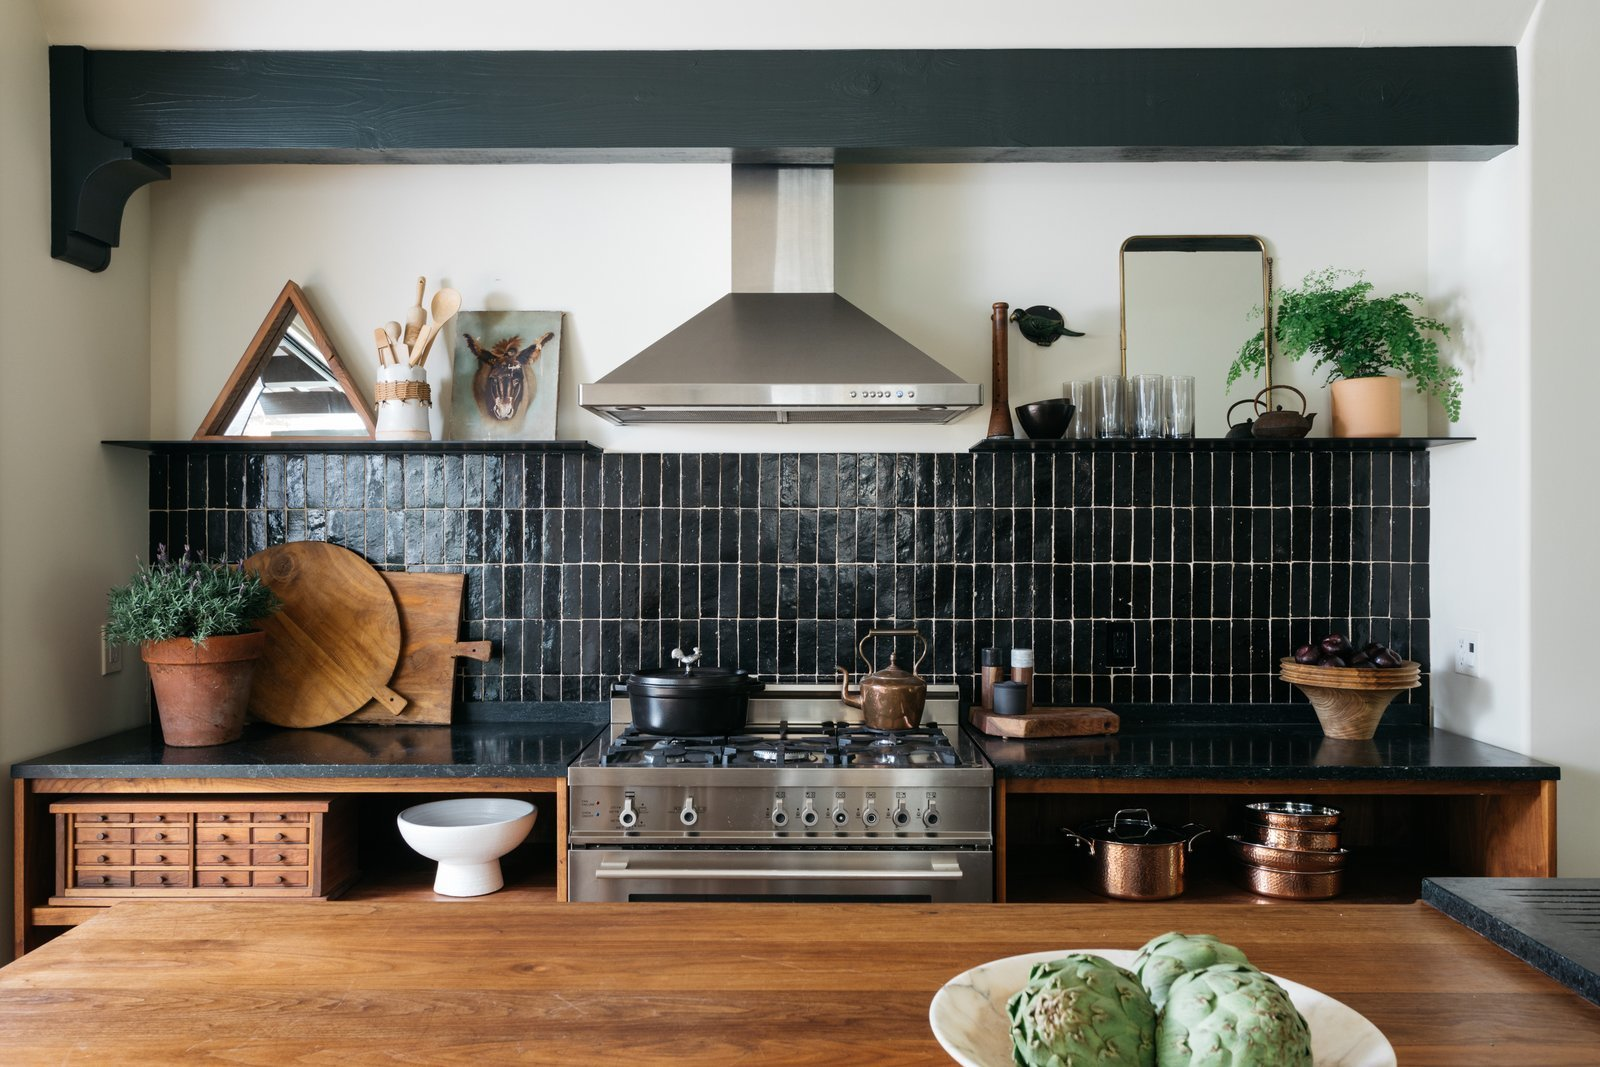 Kitchen, Wood Cabinet, Range, Subway Tile Backsplashe, and Stone Counter Emily Henderson styled this kitchen, using greenery and mirrors to lighten its moody aesthetic.  Photo 8 of 9 in 9 Countertop and Cabinetry Pairings to Take Your Kitchen From Drab to Delicious